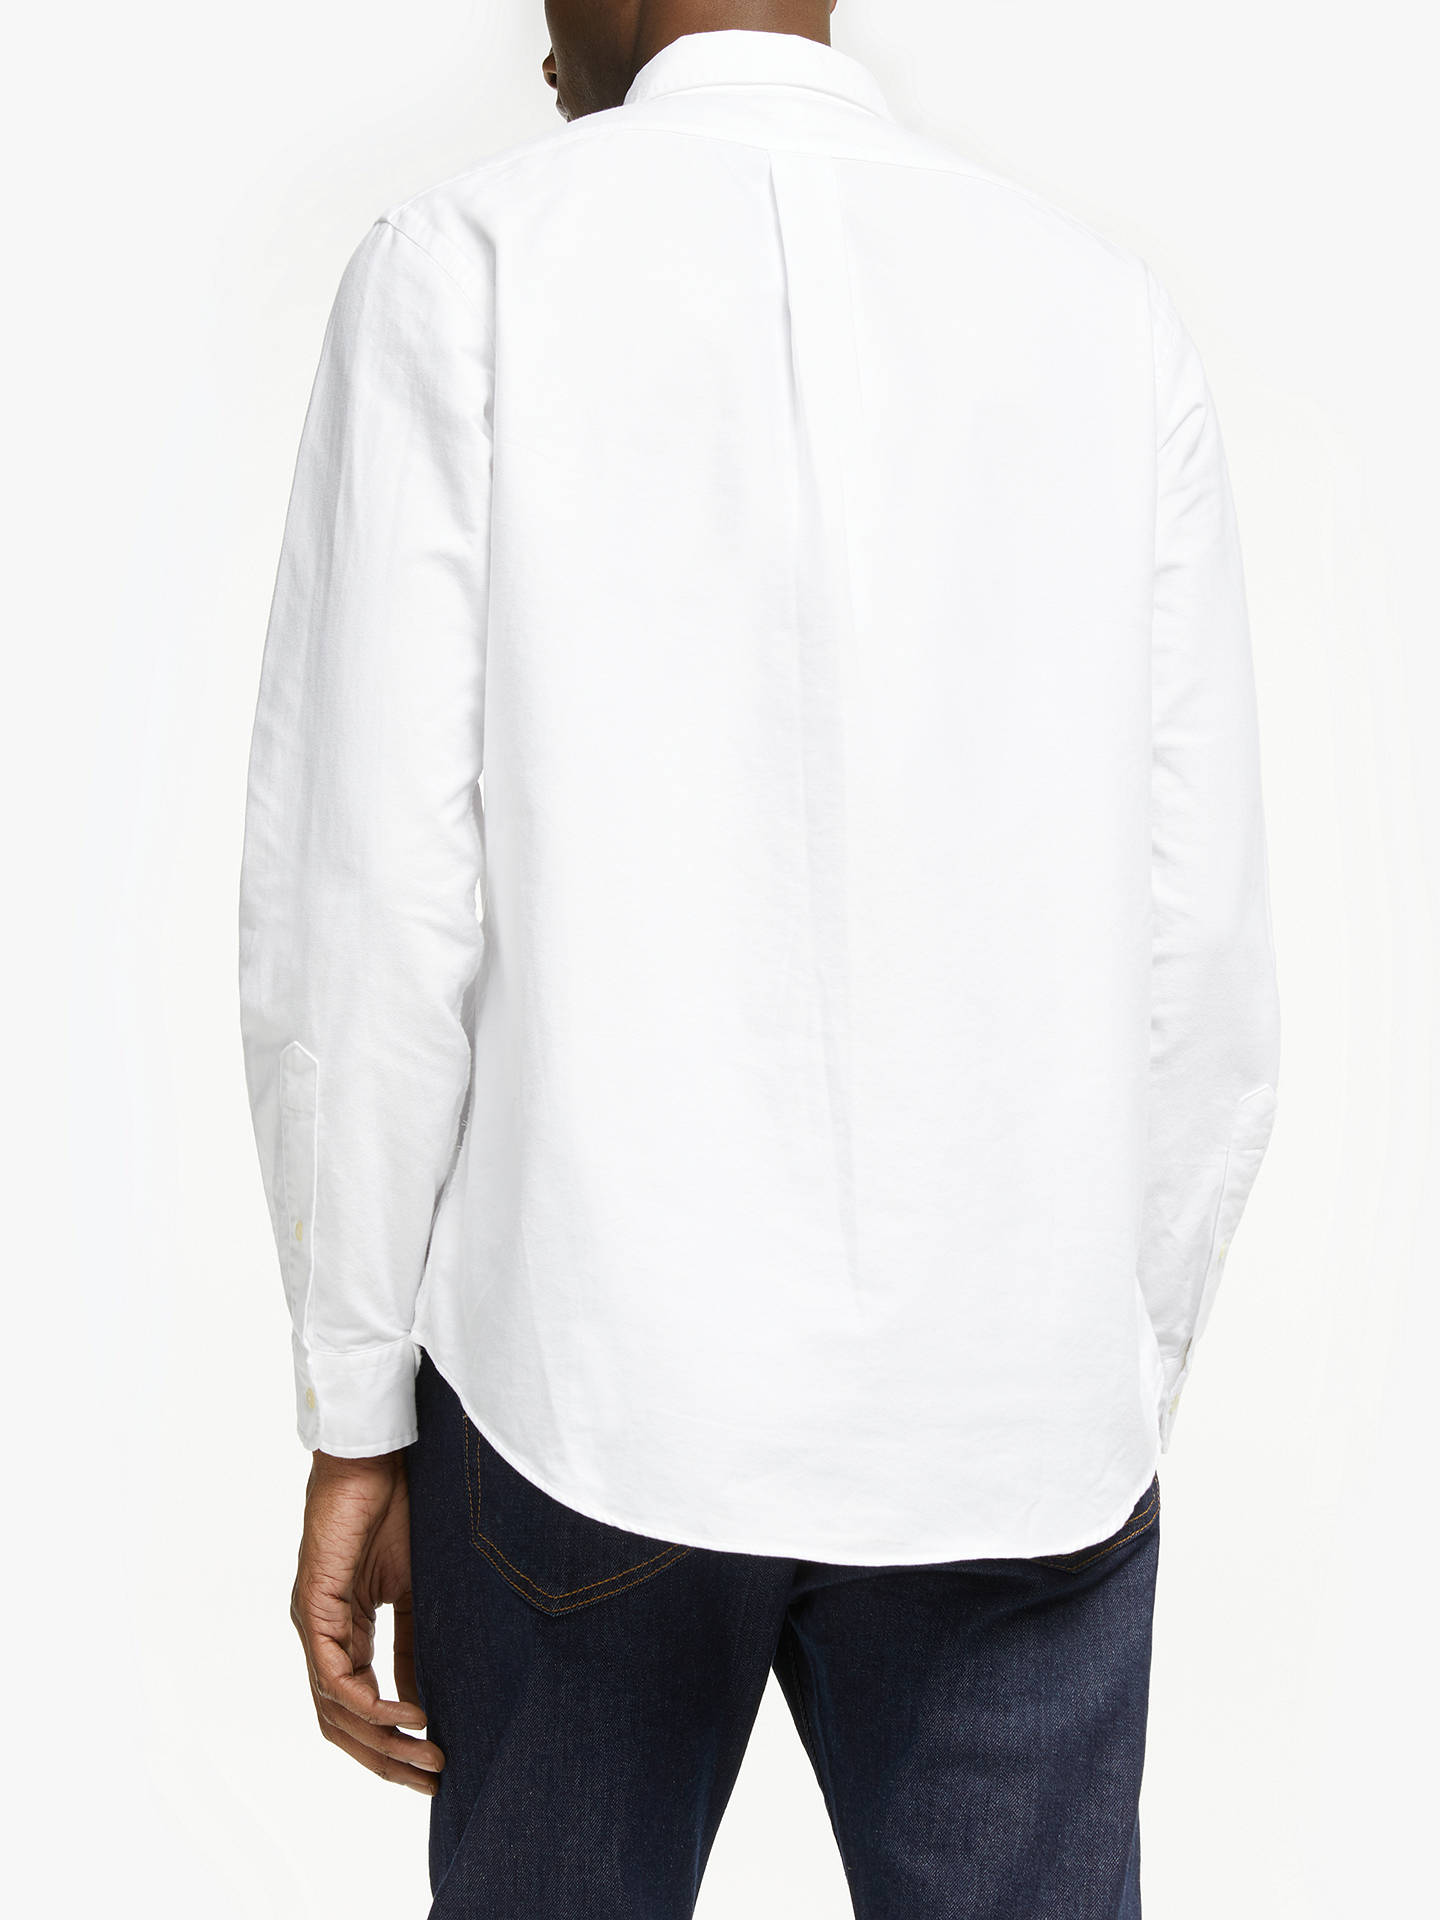 BuyPolo Ralph Lauren Oxford Shirt, White, S Online at johnlewis.com